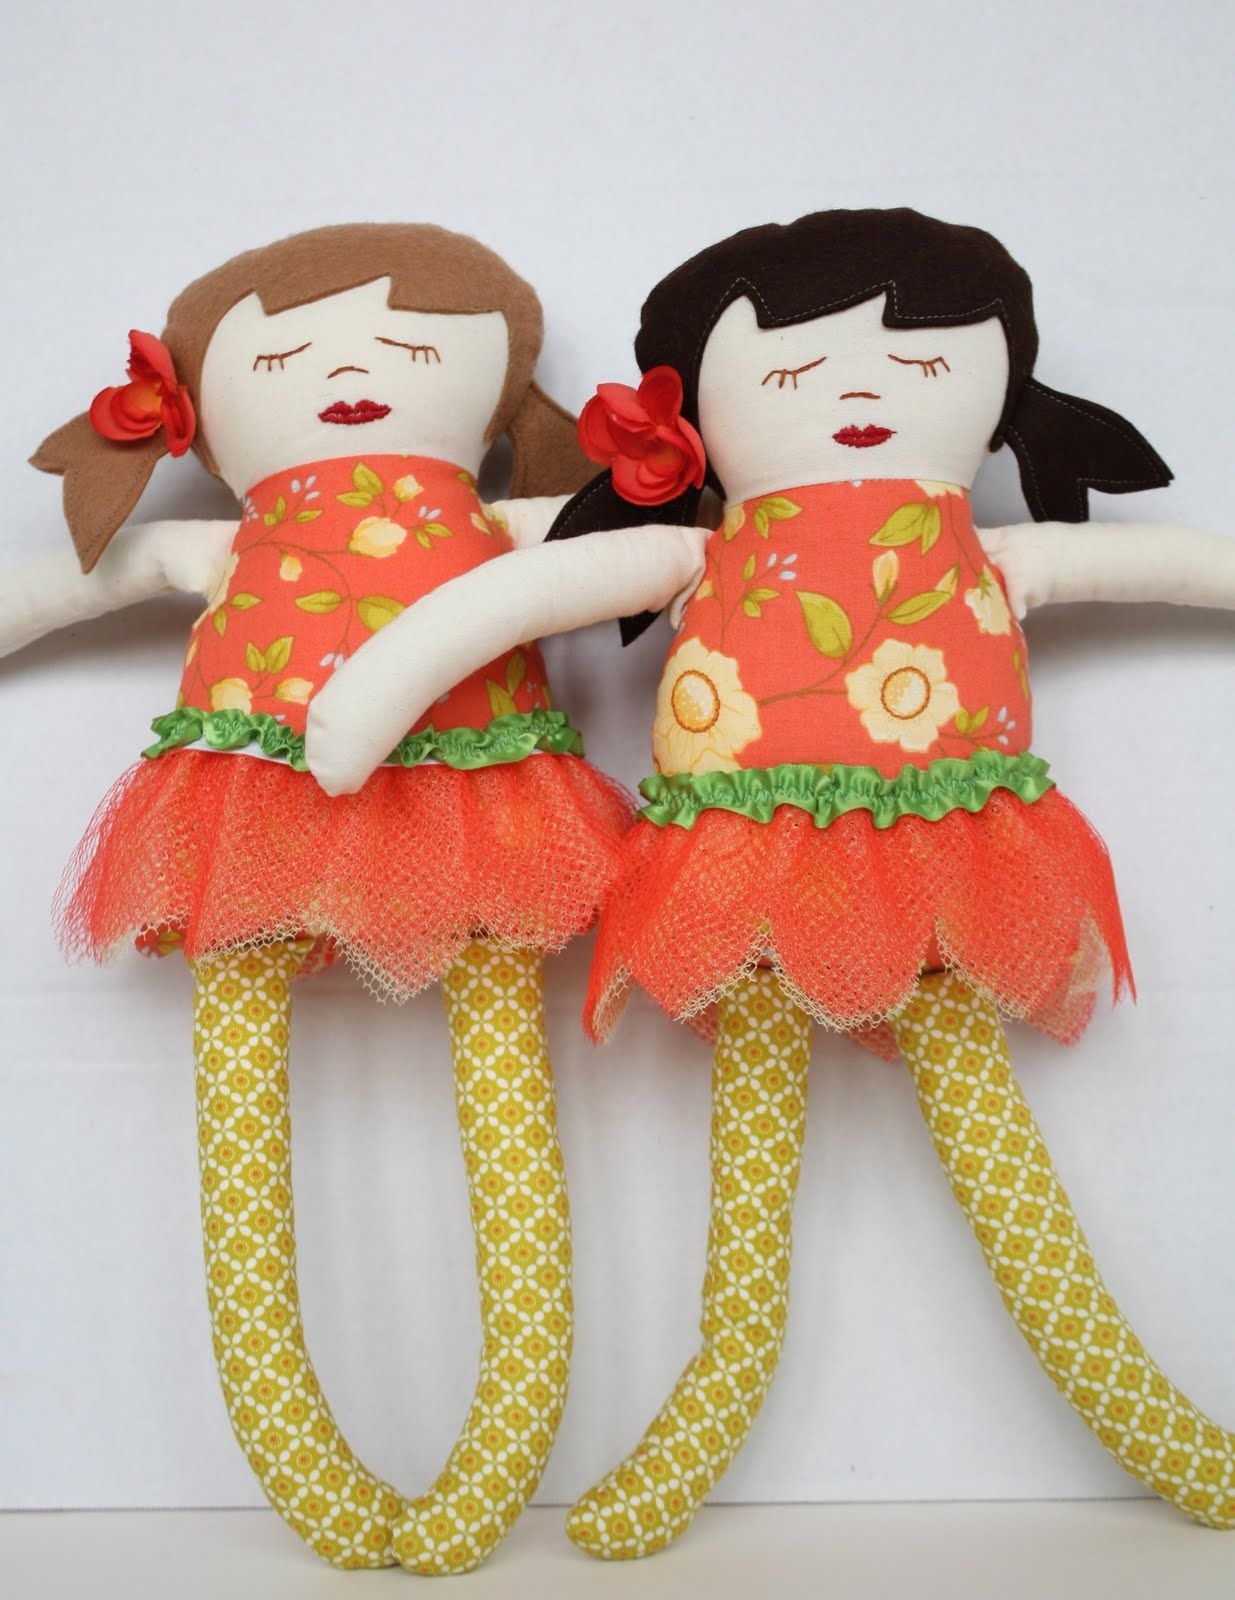 At Second Street: dolls for the fairy festival